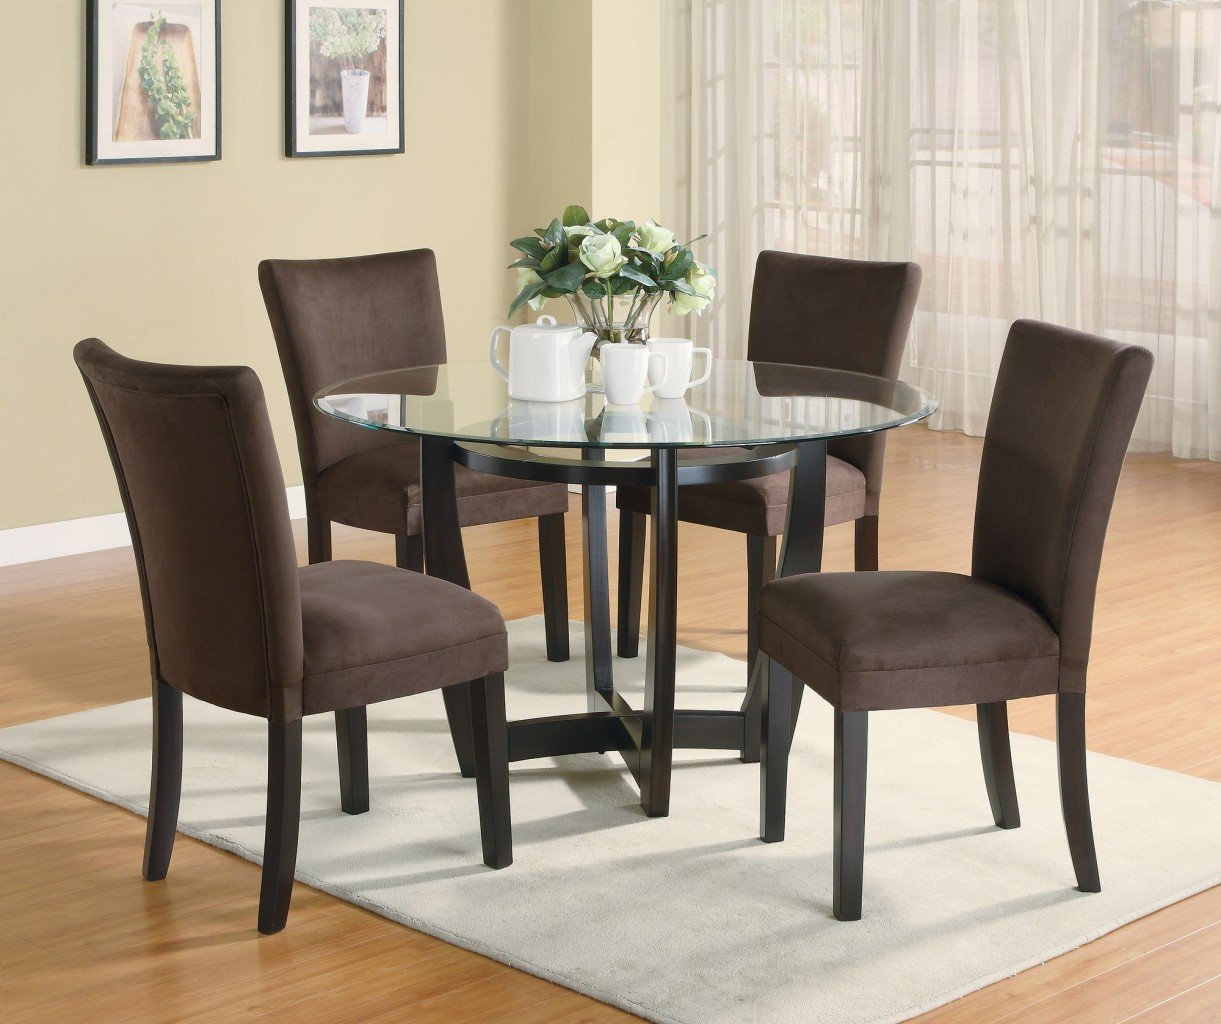 Cheap dining room table sets home furniture design - Dining room sets ...